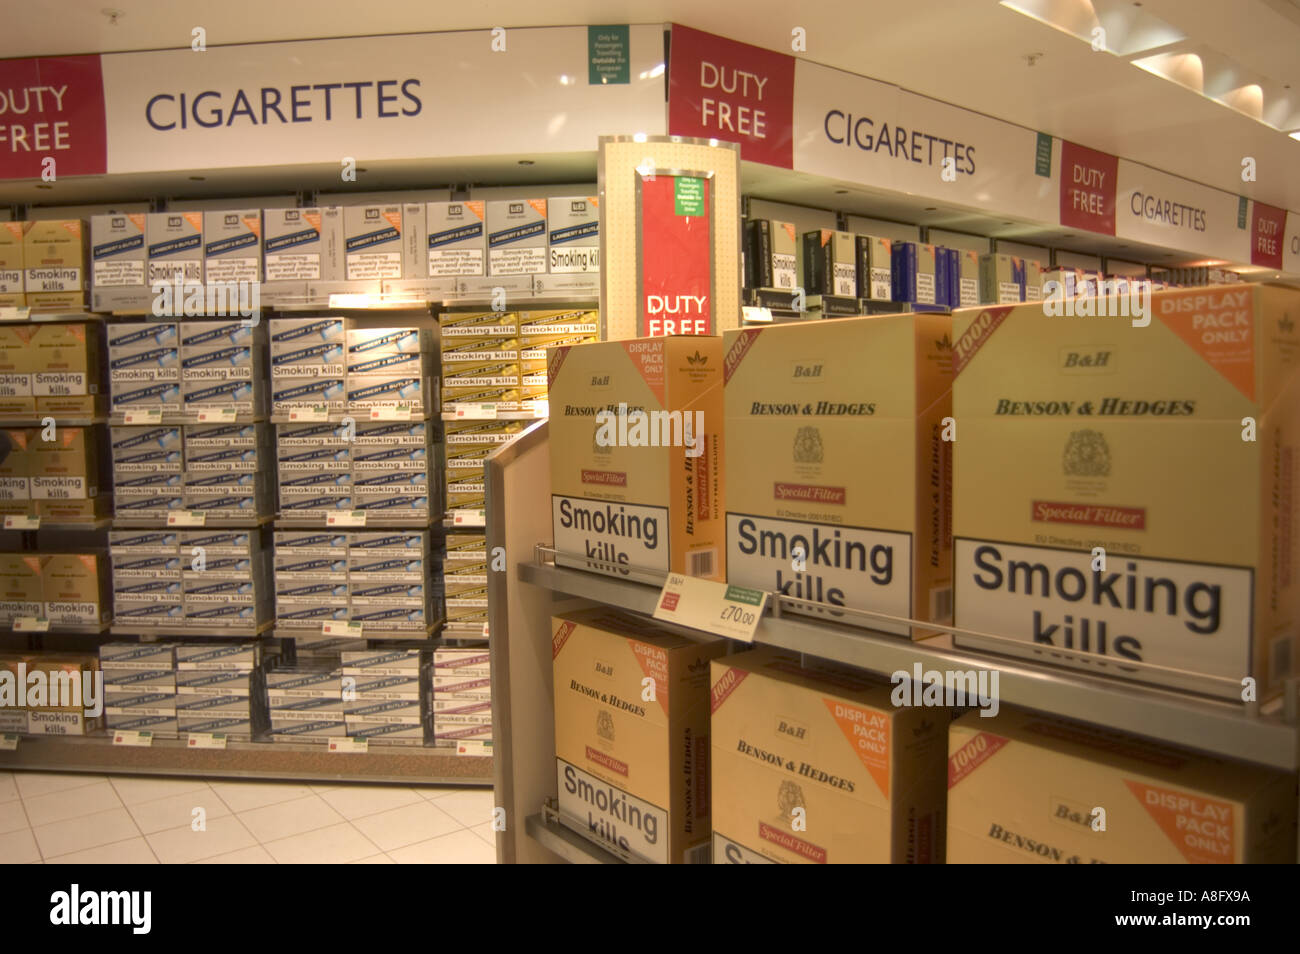 Cigarettes sold in Connecticut